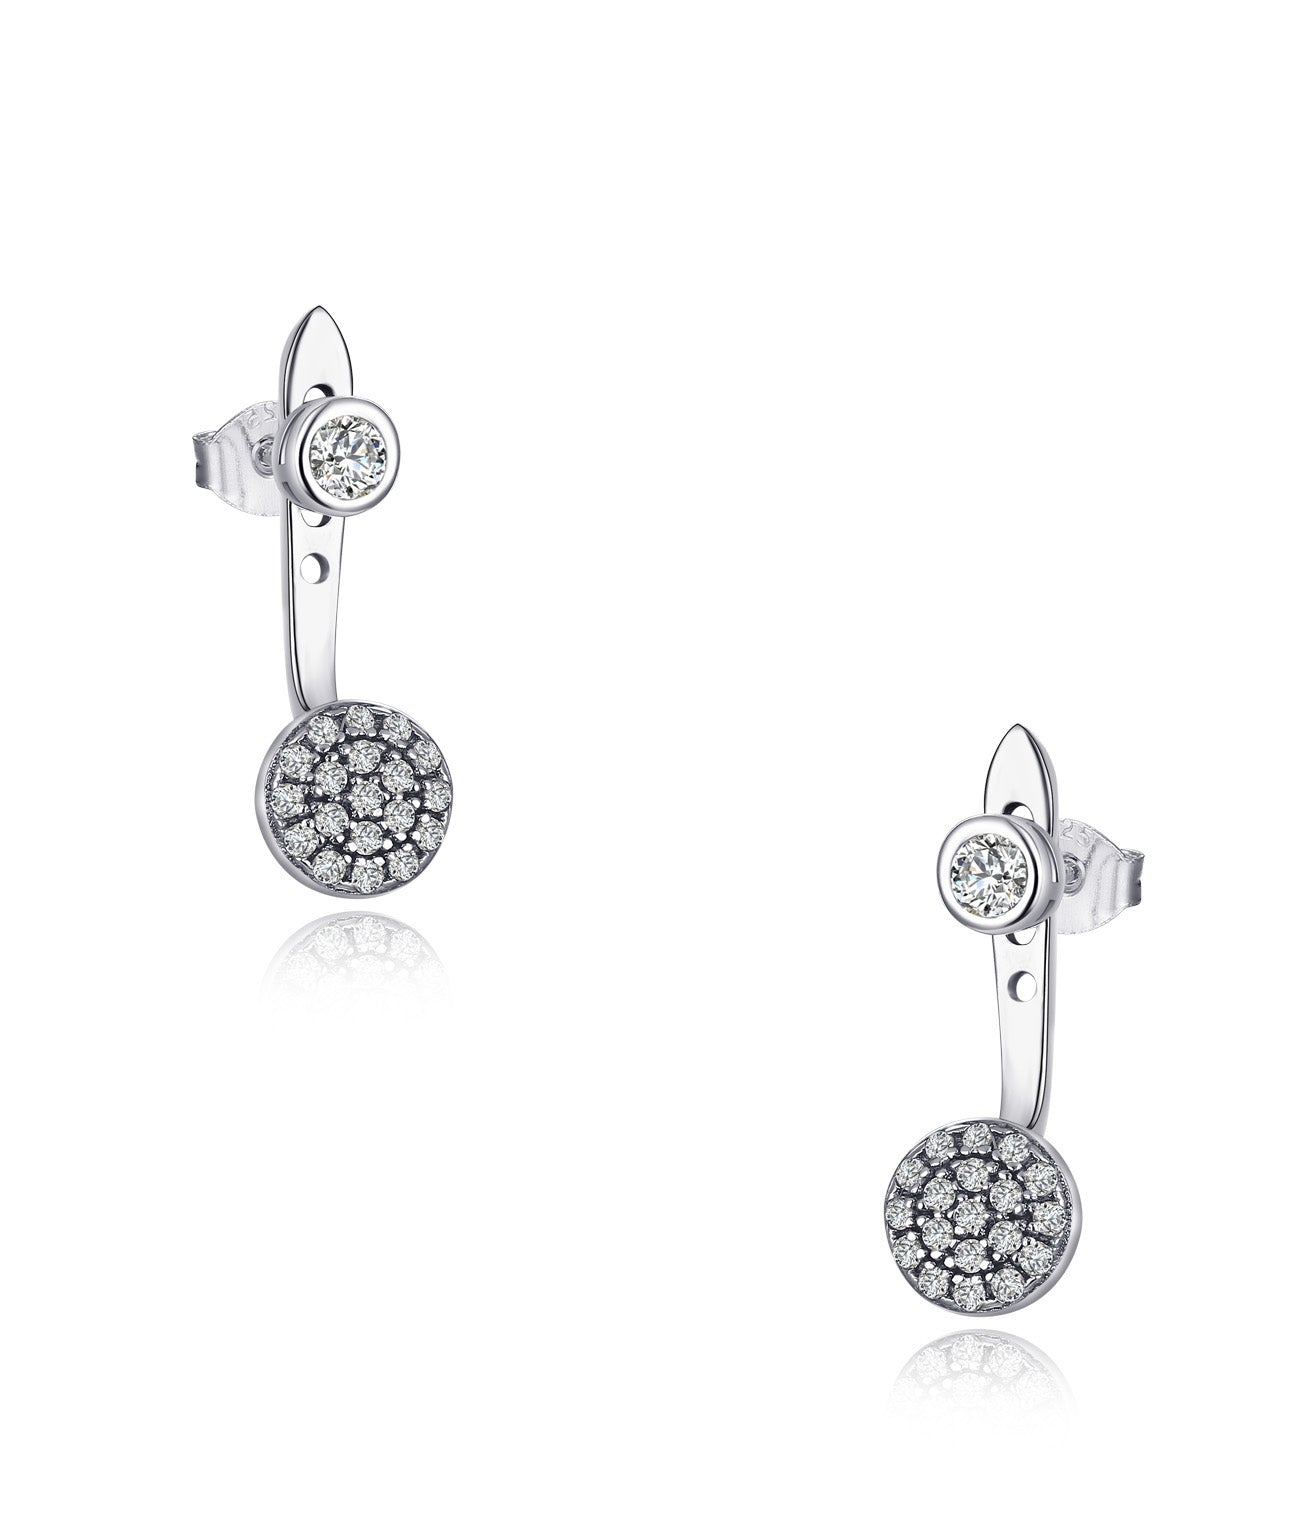 Brenna Rhodium Plating Round Charm Earrings, Ring, Gifts for Mom, Best Friends, Silver Tone - Quan Jewelry